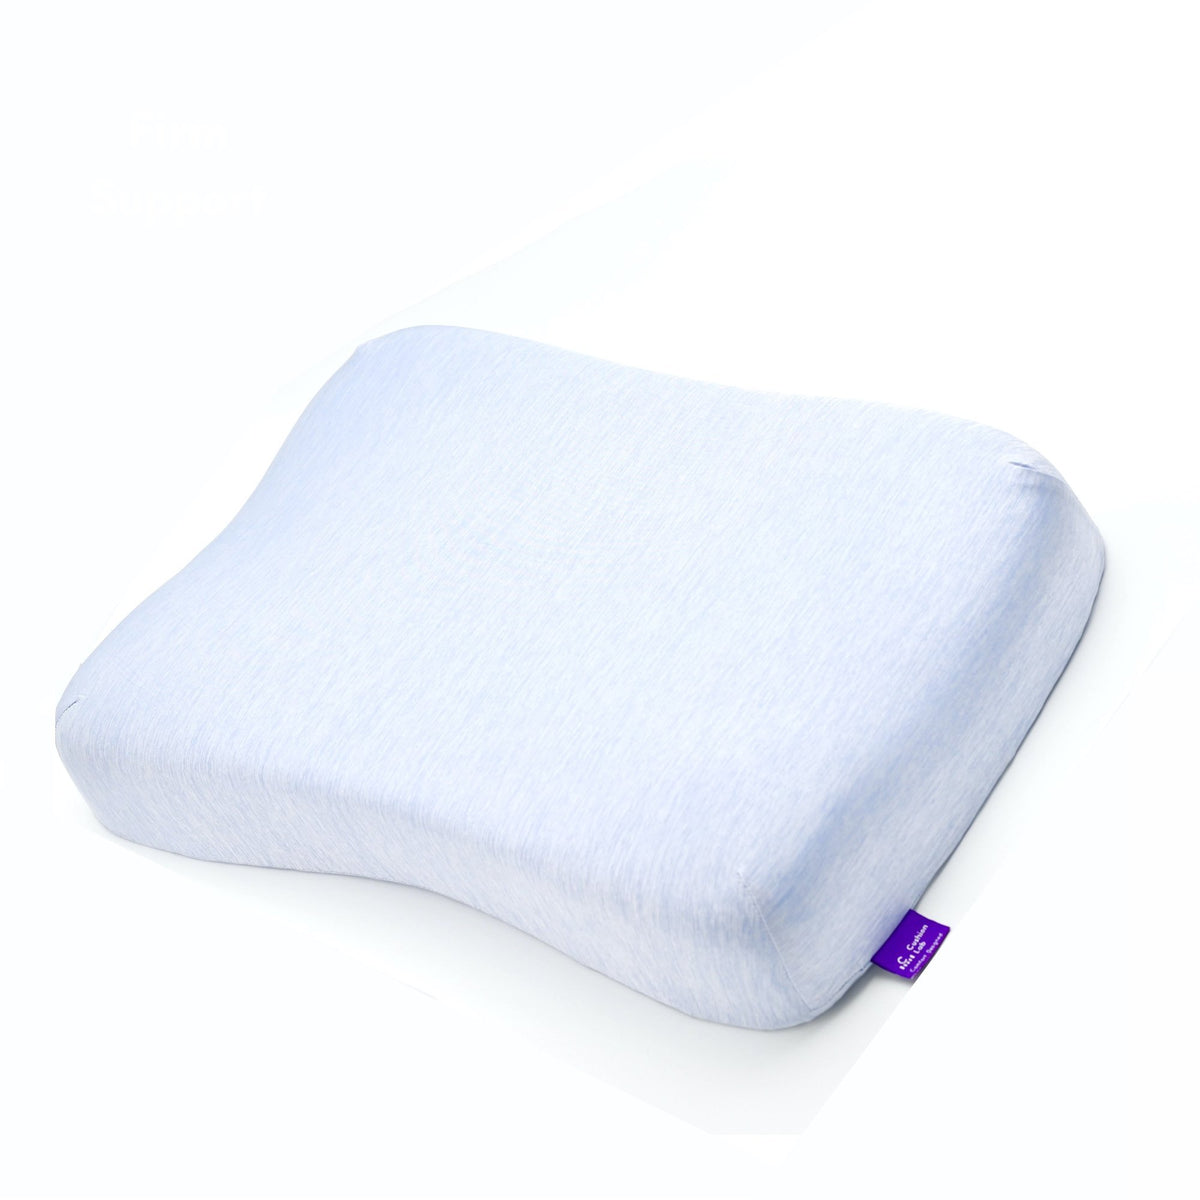 Cooling Ergonomic Contour Pillow - Cushion Lab